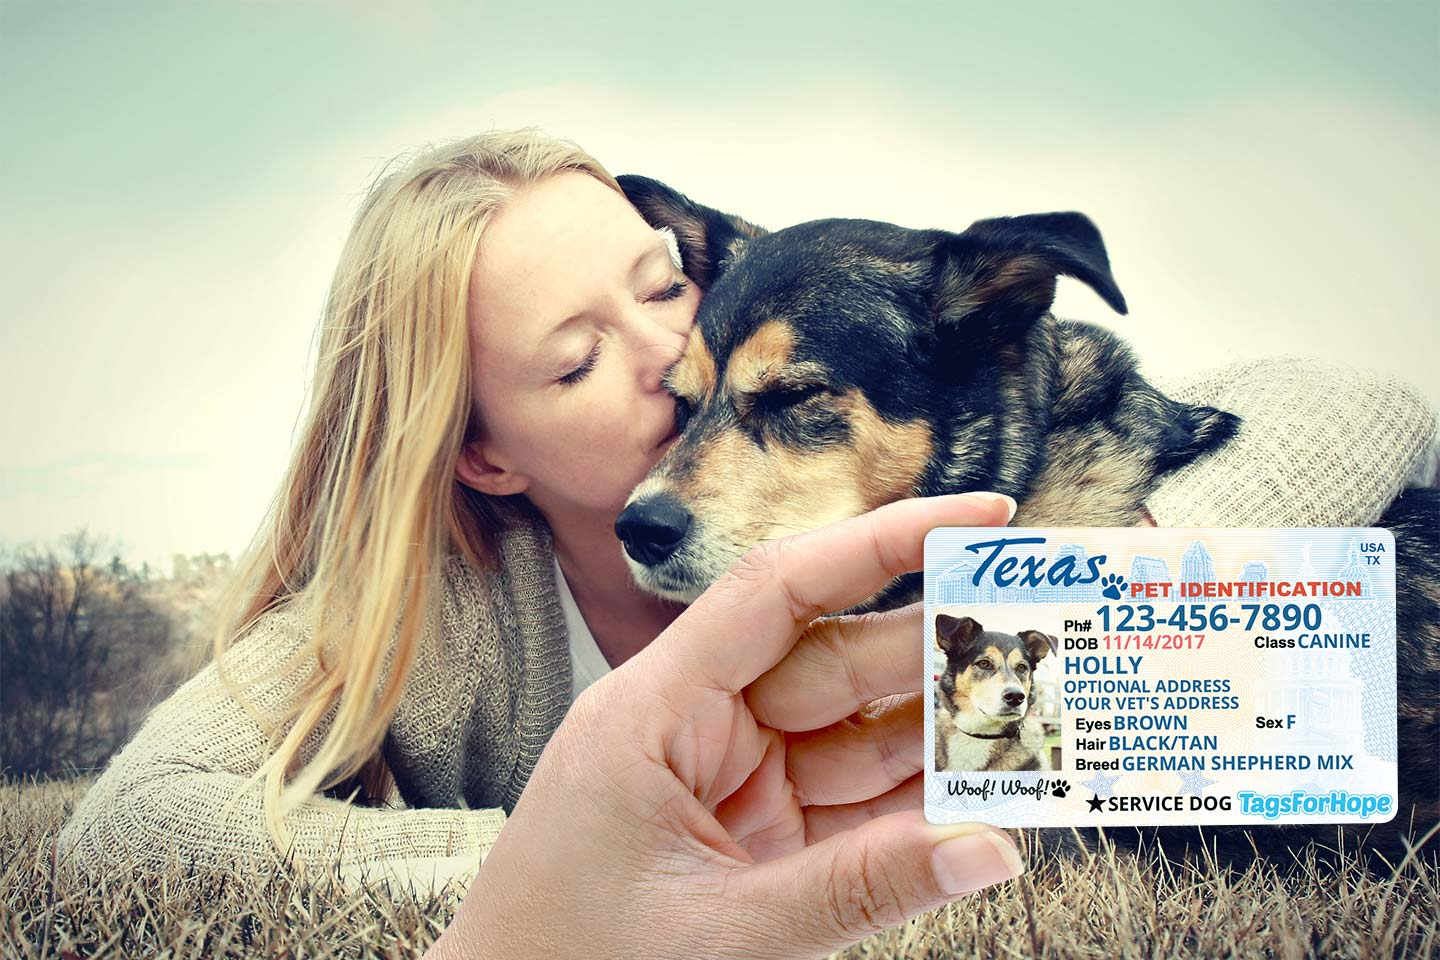 Wallet ID card shown in front of woman and dog hugging